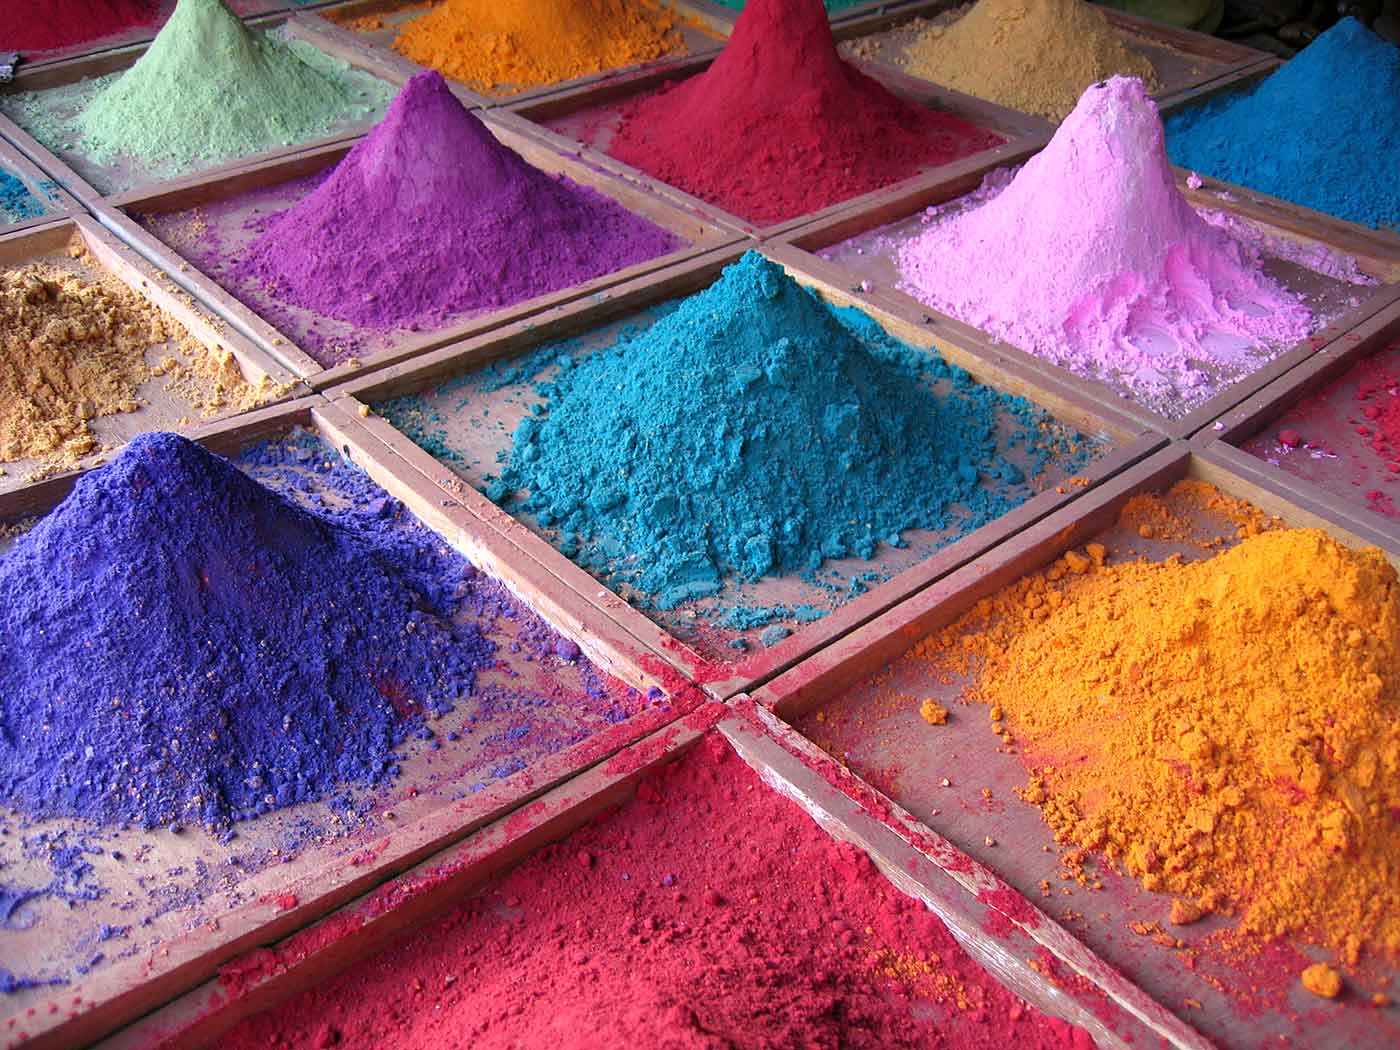 Pigments for sale in market in Goa, India.